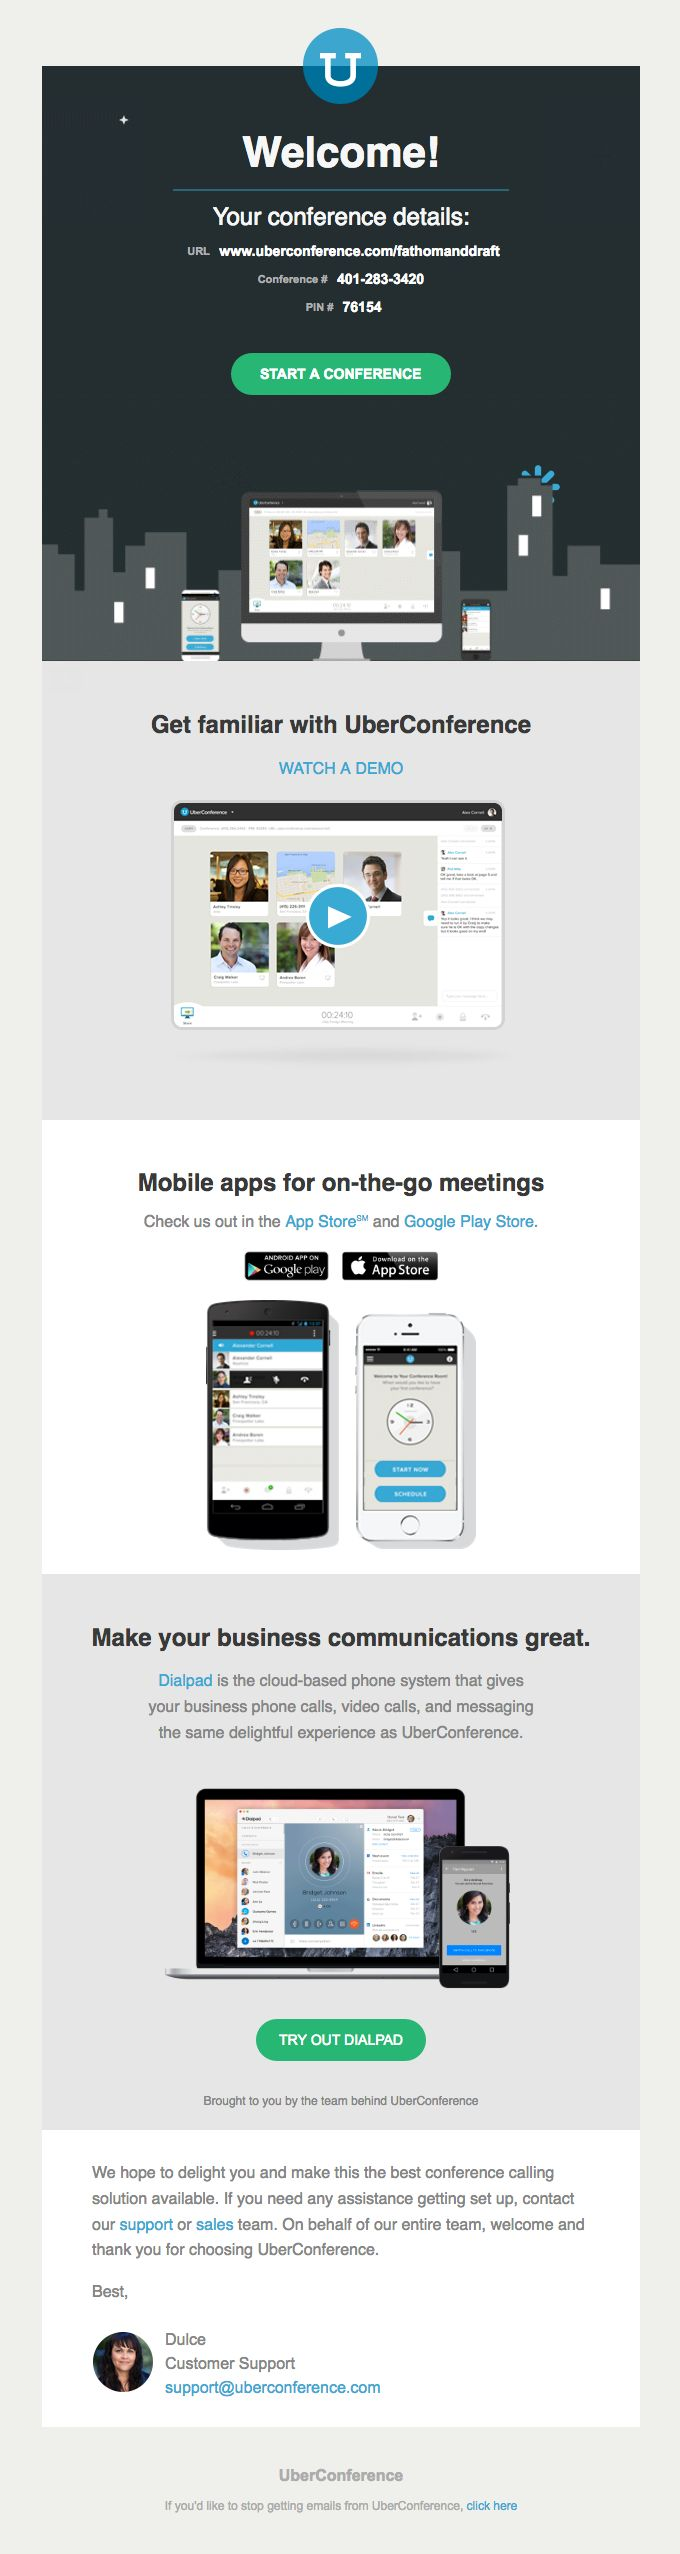 best images about welcome emails email uberconference sent this email the subject line welcome to uberconference about this email and more onboarding emails at